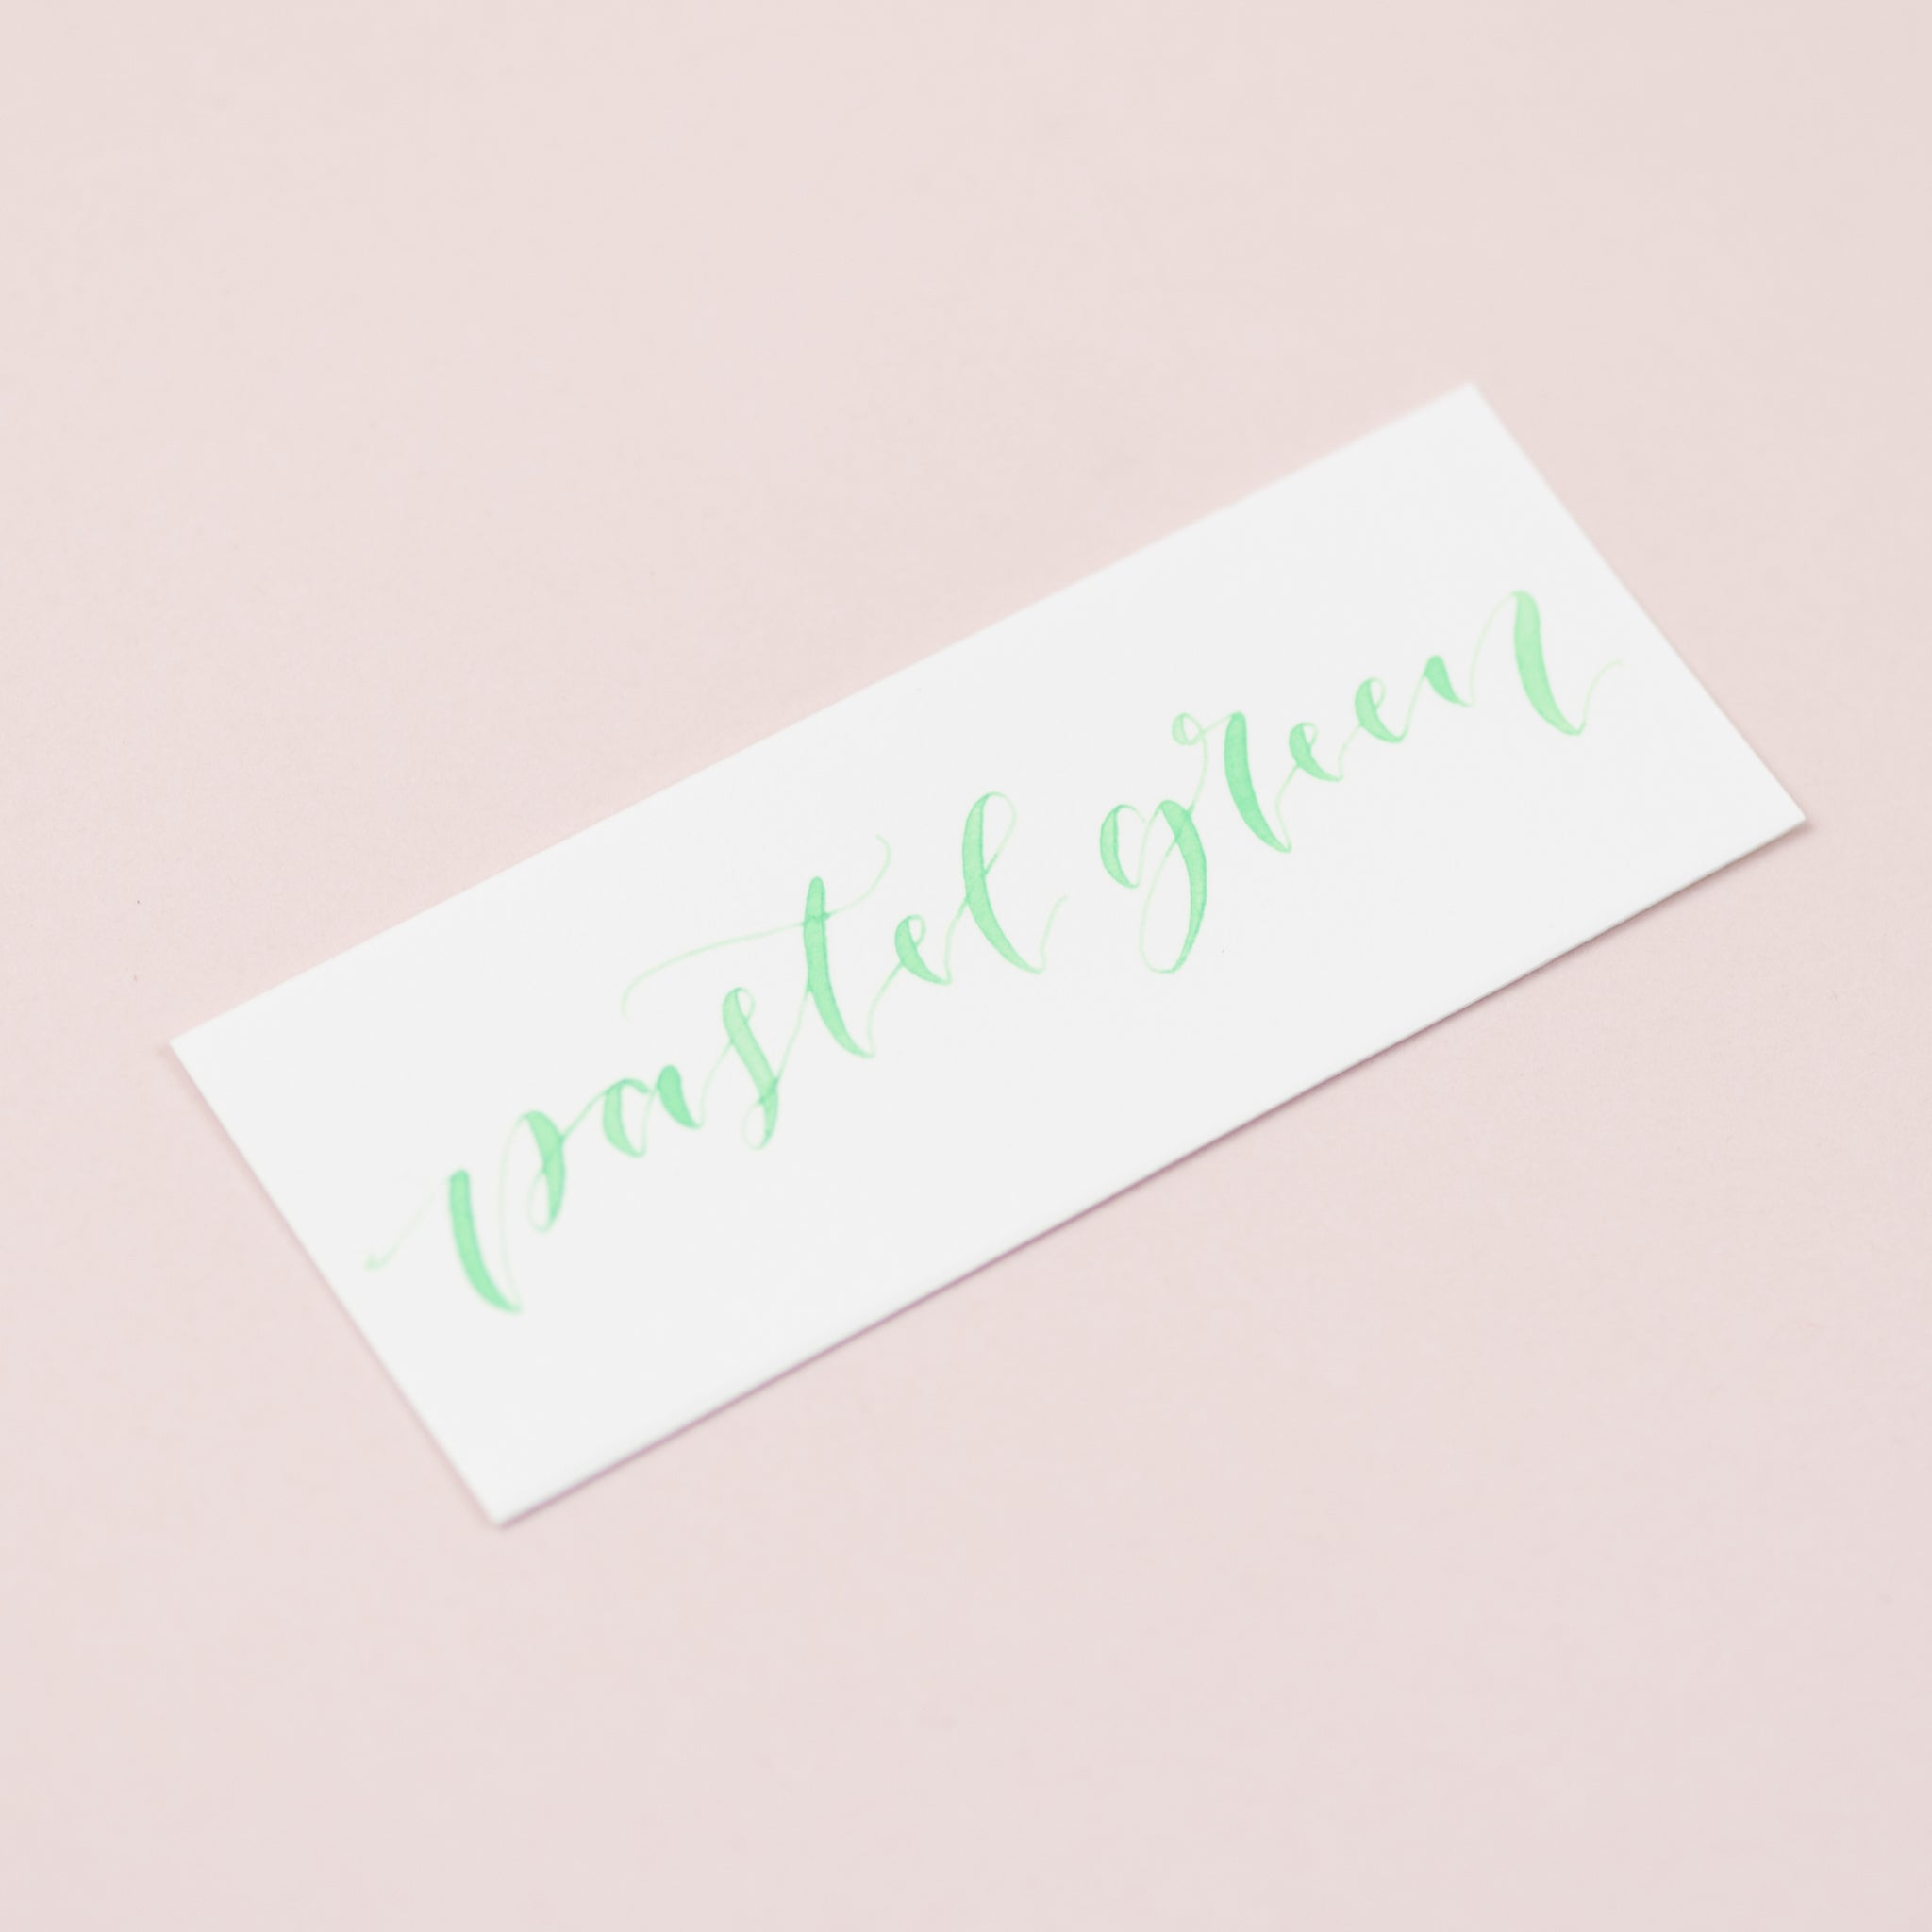 Pastel Green Calligraphy Ink